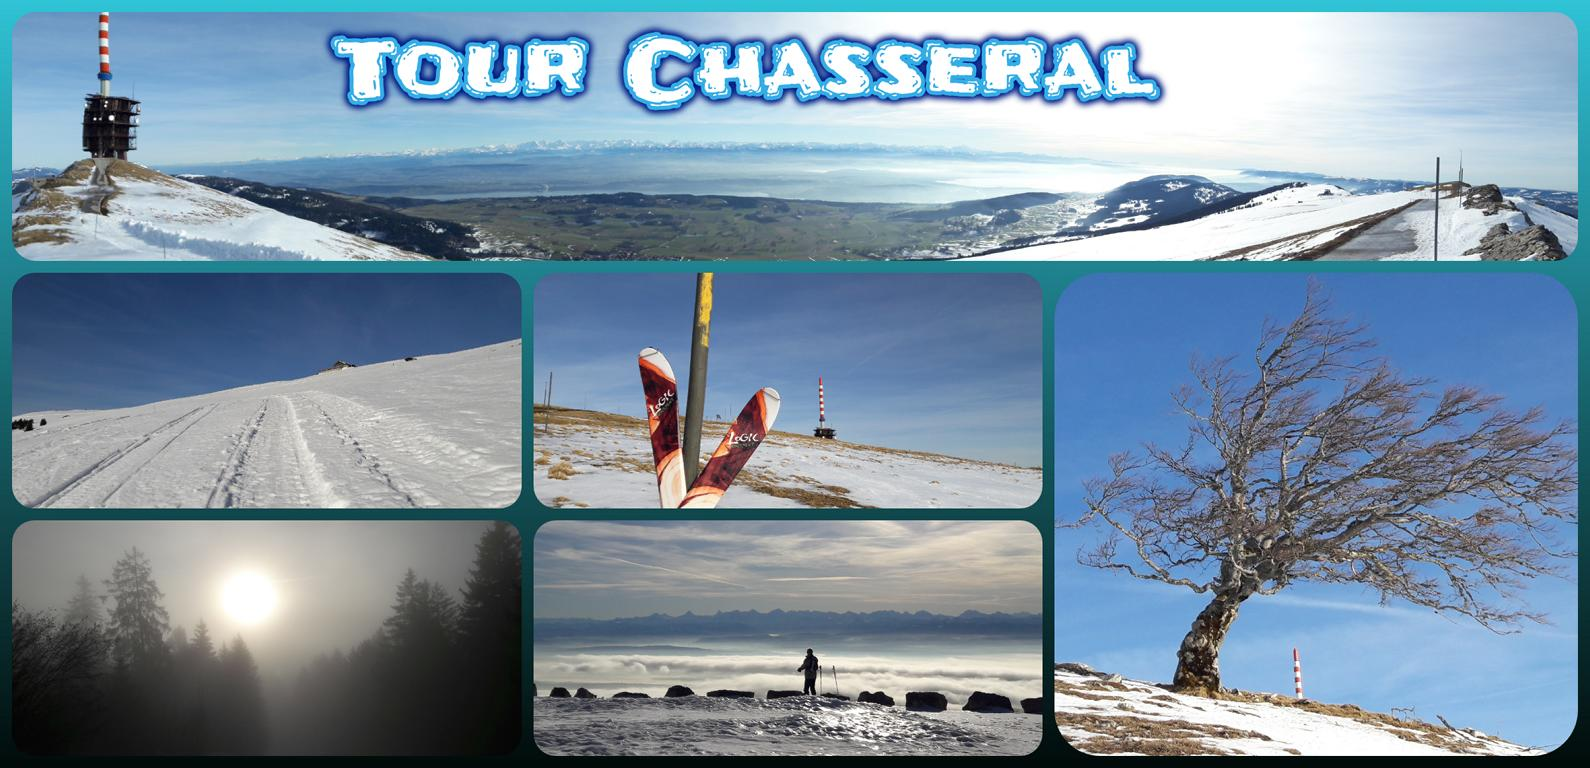 Tour Chasseral